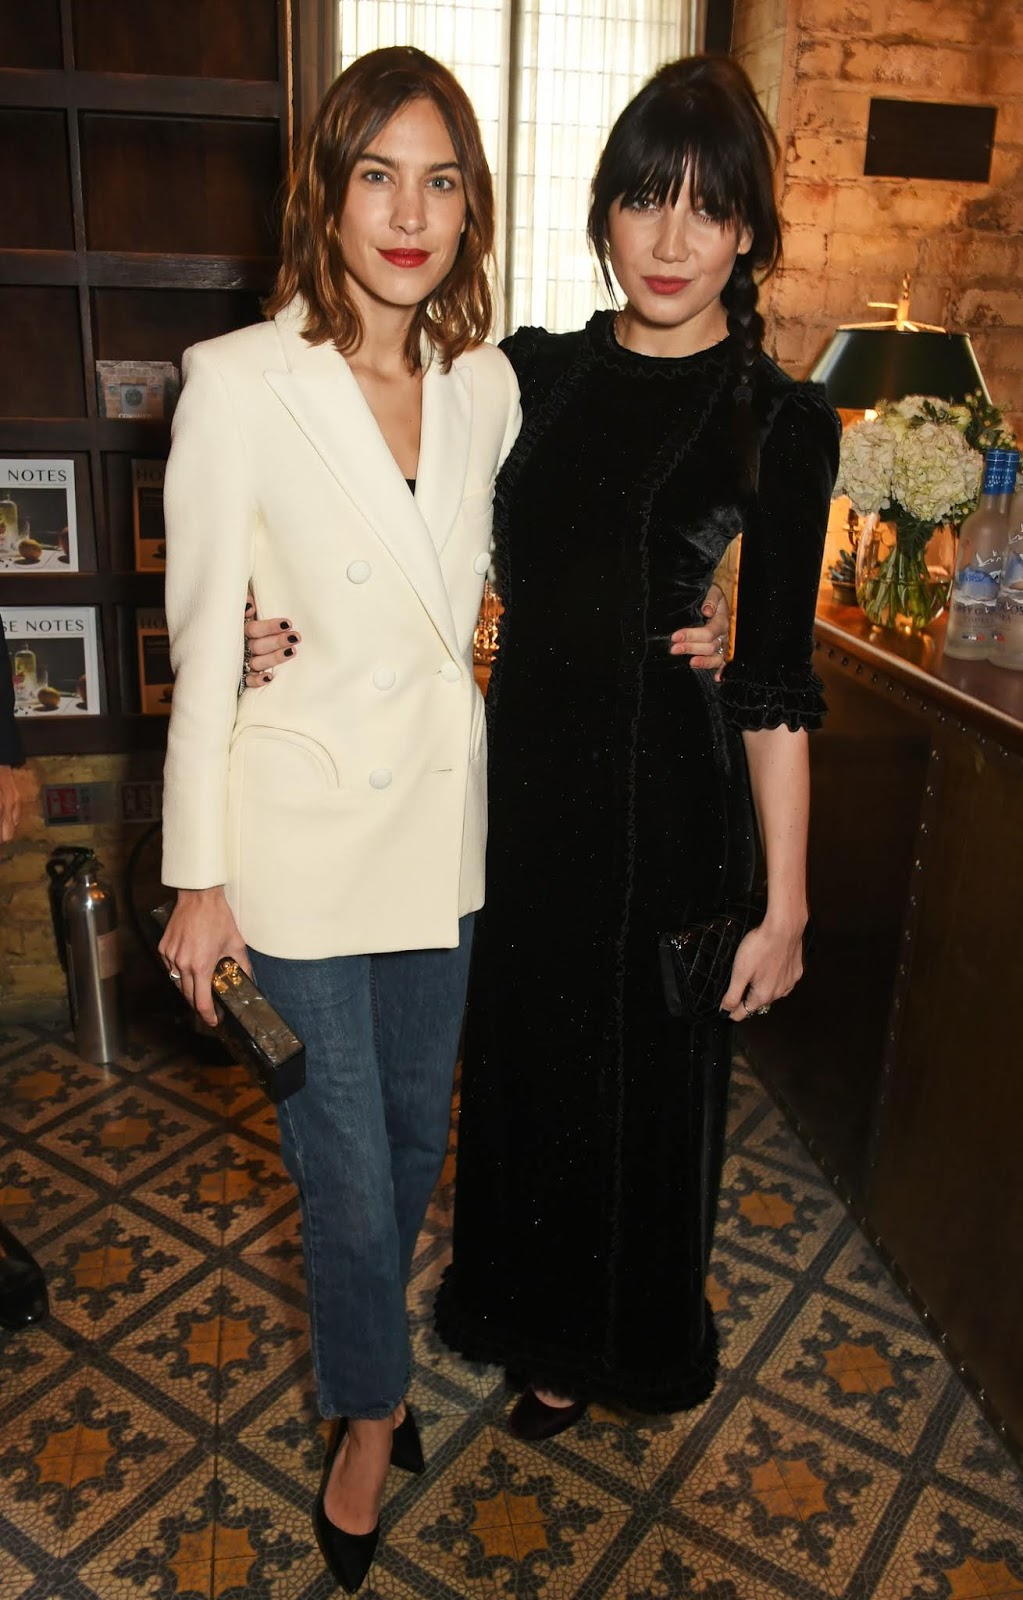 Last-Minute Easy Holiday Party Outfit — Alexa Chung in a White Blazer, Lace Top, Jeans, and Black Pumps